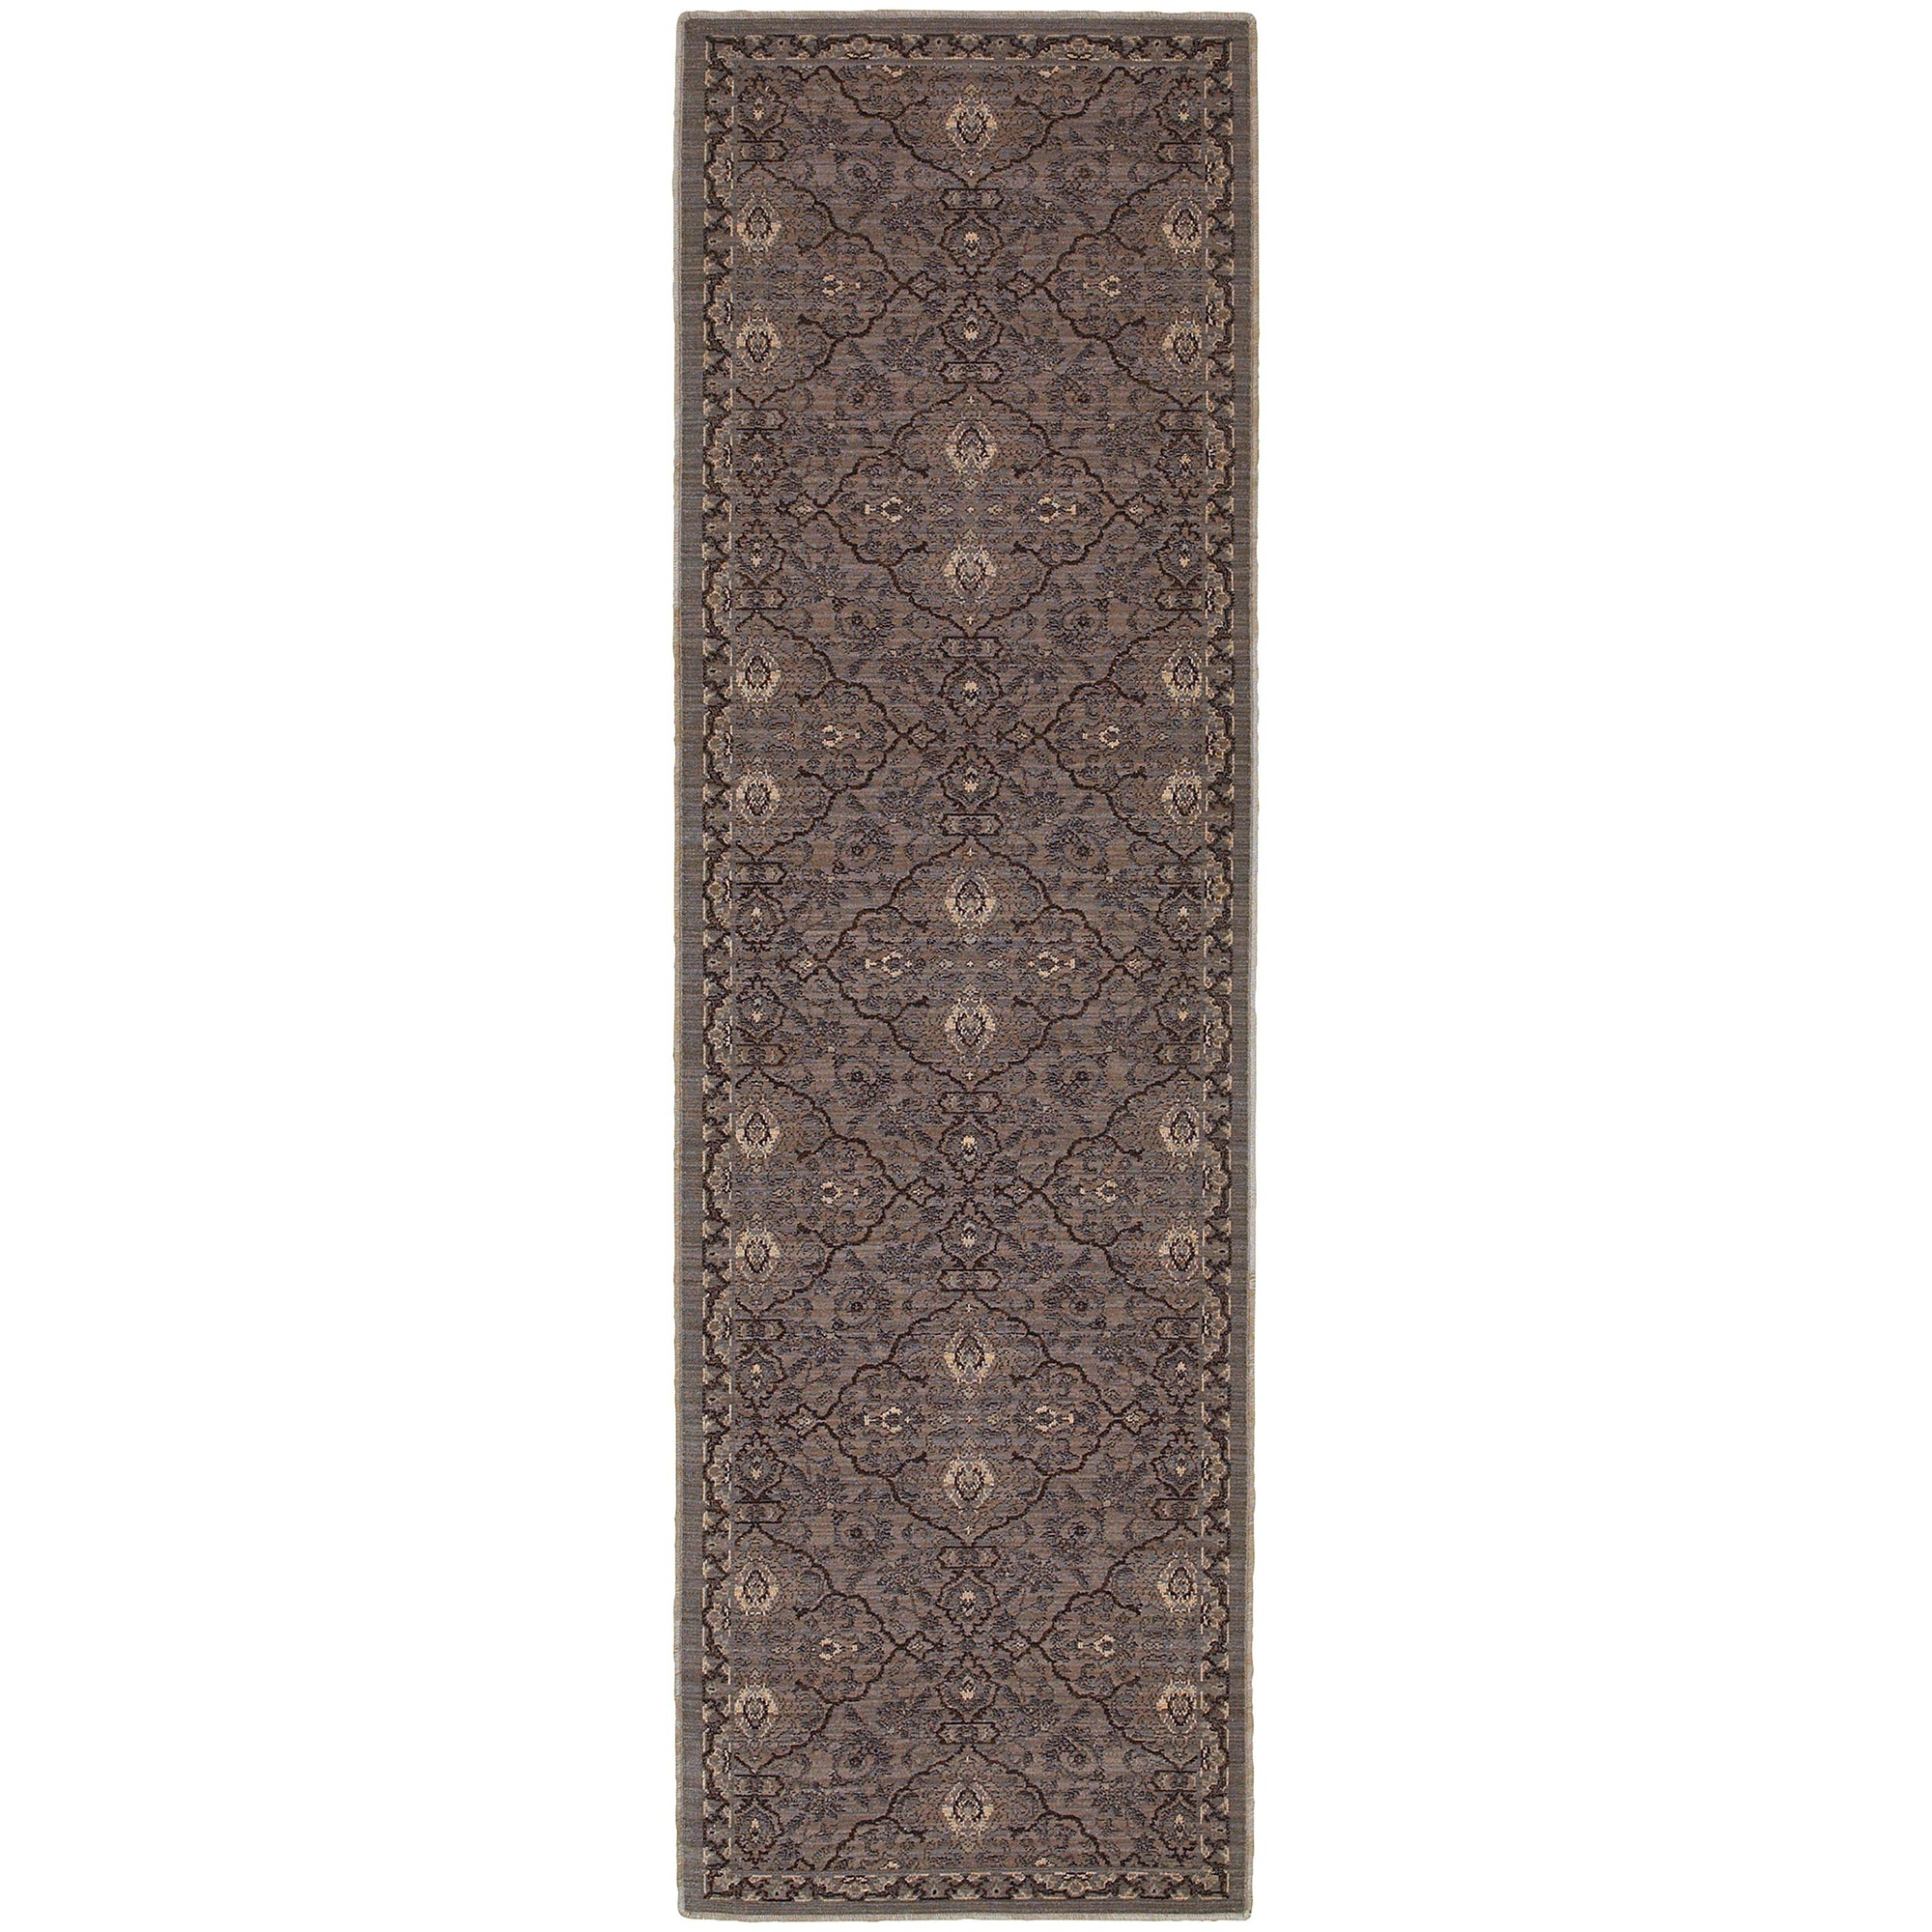 "Tommy Bahama Home Vintage 5509d Brown/Blue-Area Rug-Tommy Bahama Home-1'10"" X 3' 3""-The Rug Truck"